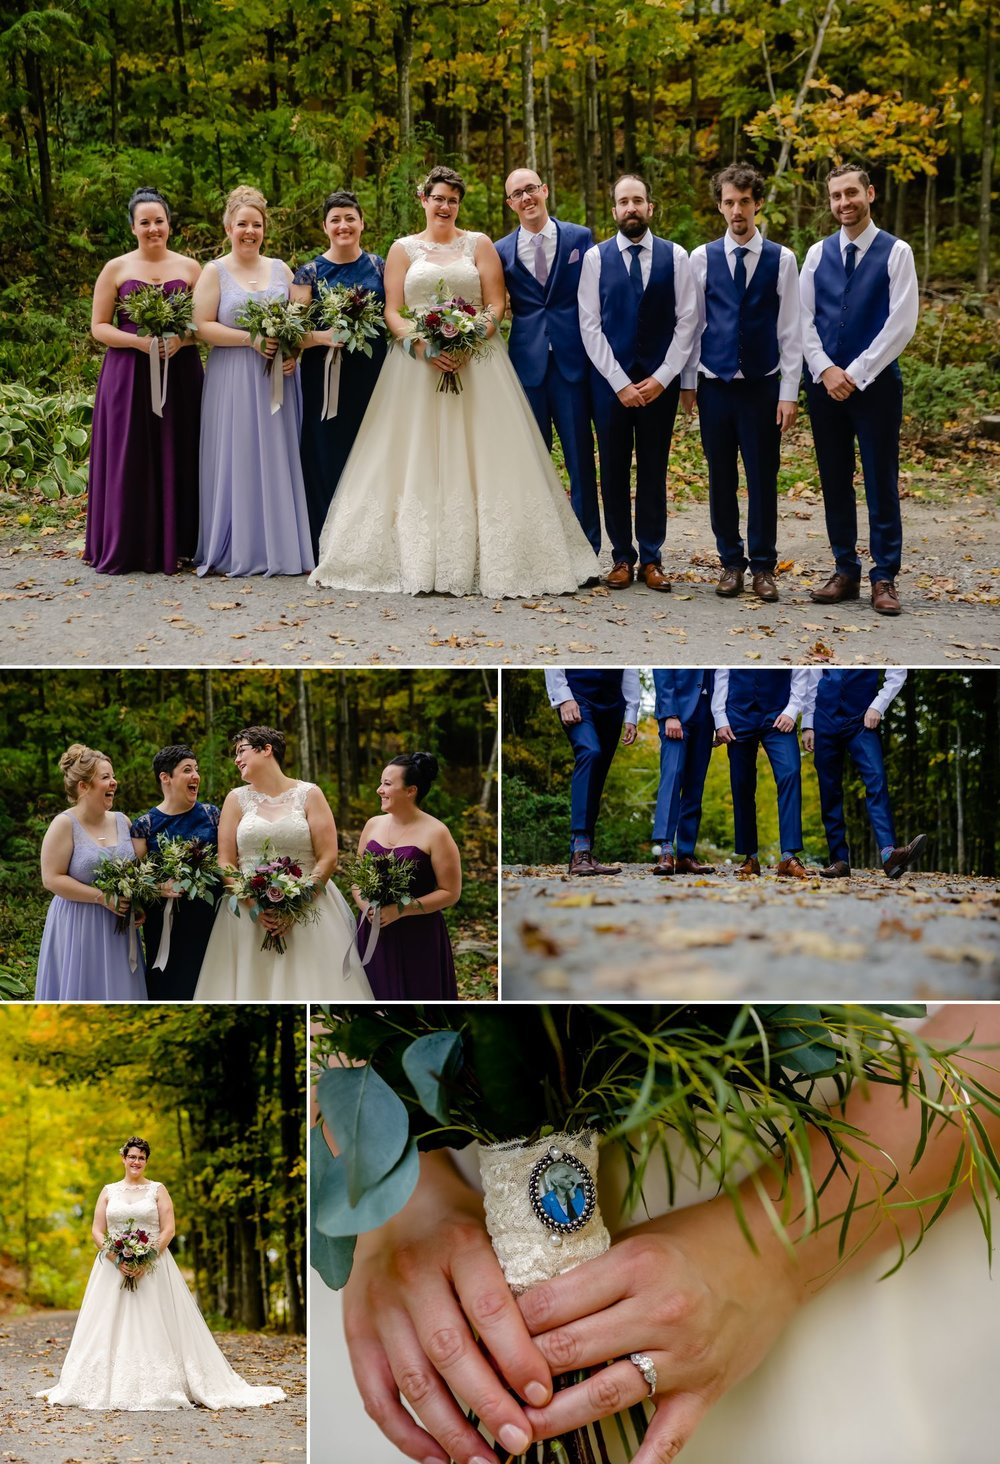 Portraits taken of the bride and groom and their wedding party party after their outdoor ceremony at La Grange de la Gatineau